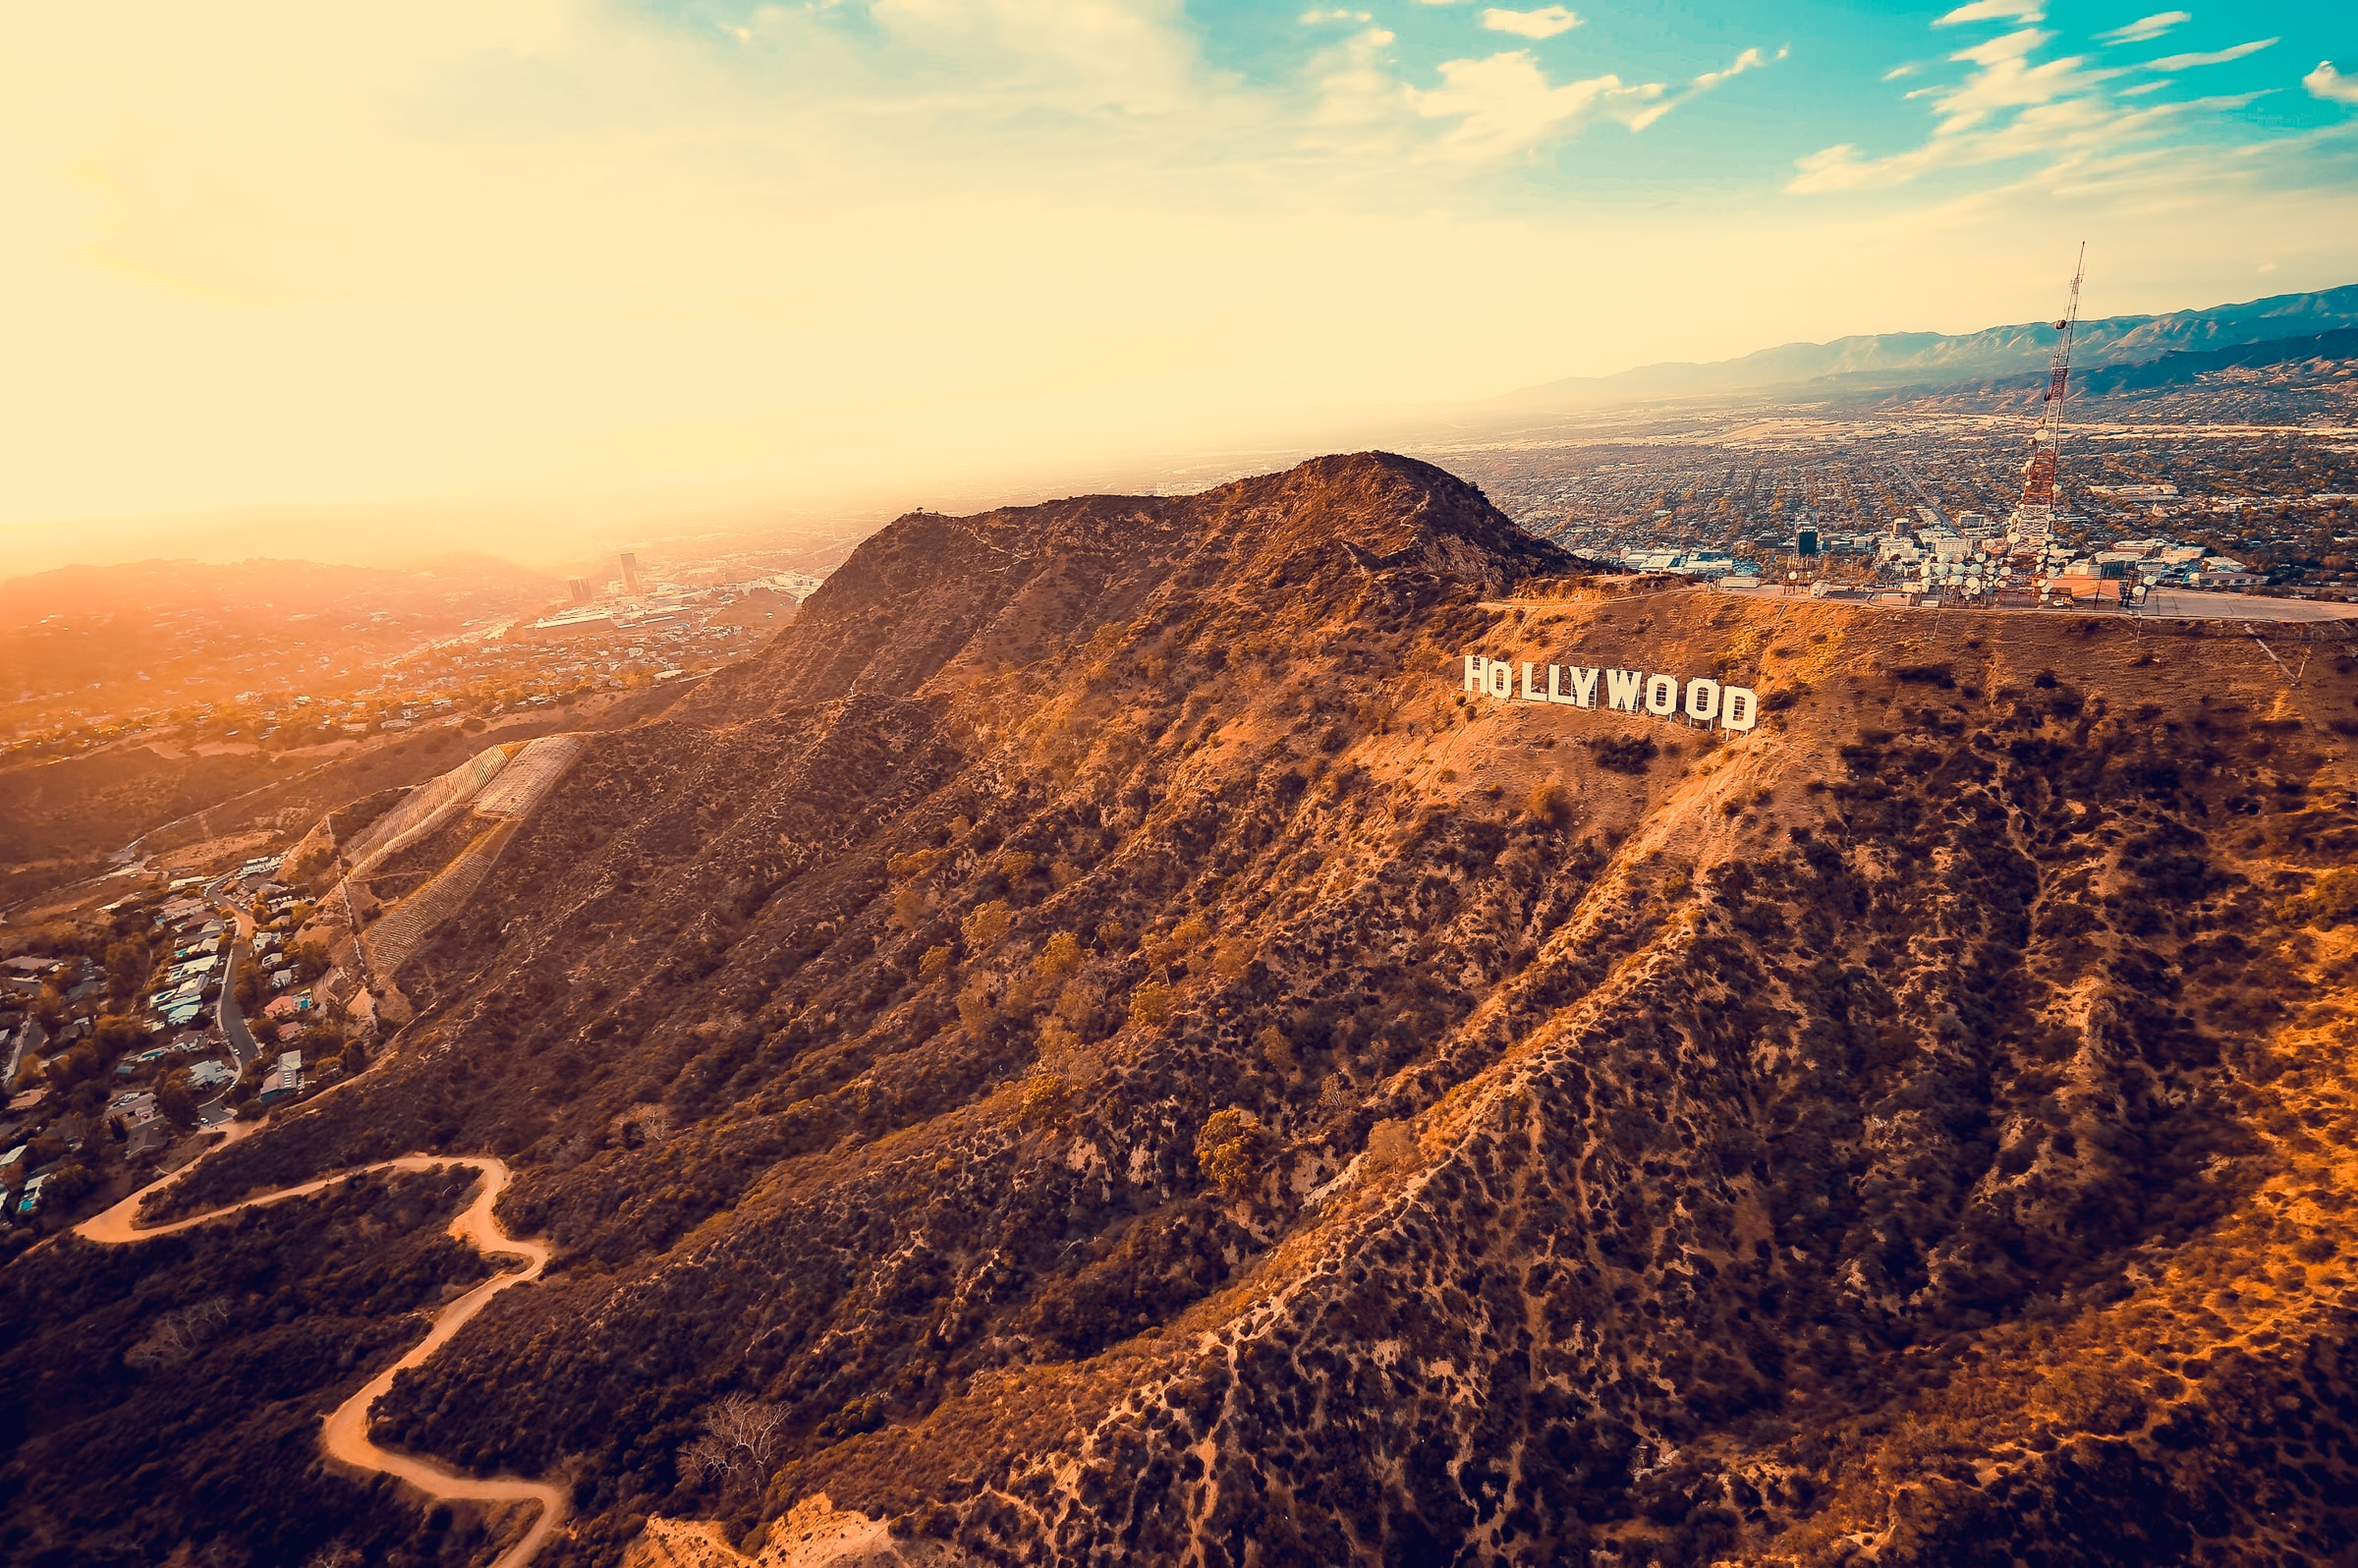 aerial photography of Hollywood signage on mountain